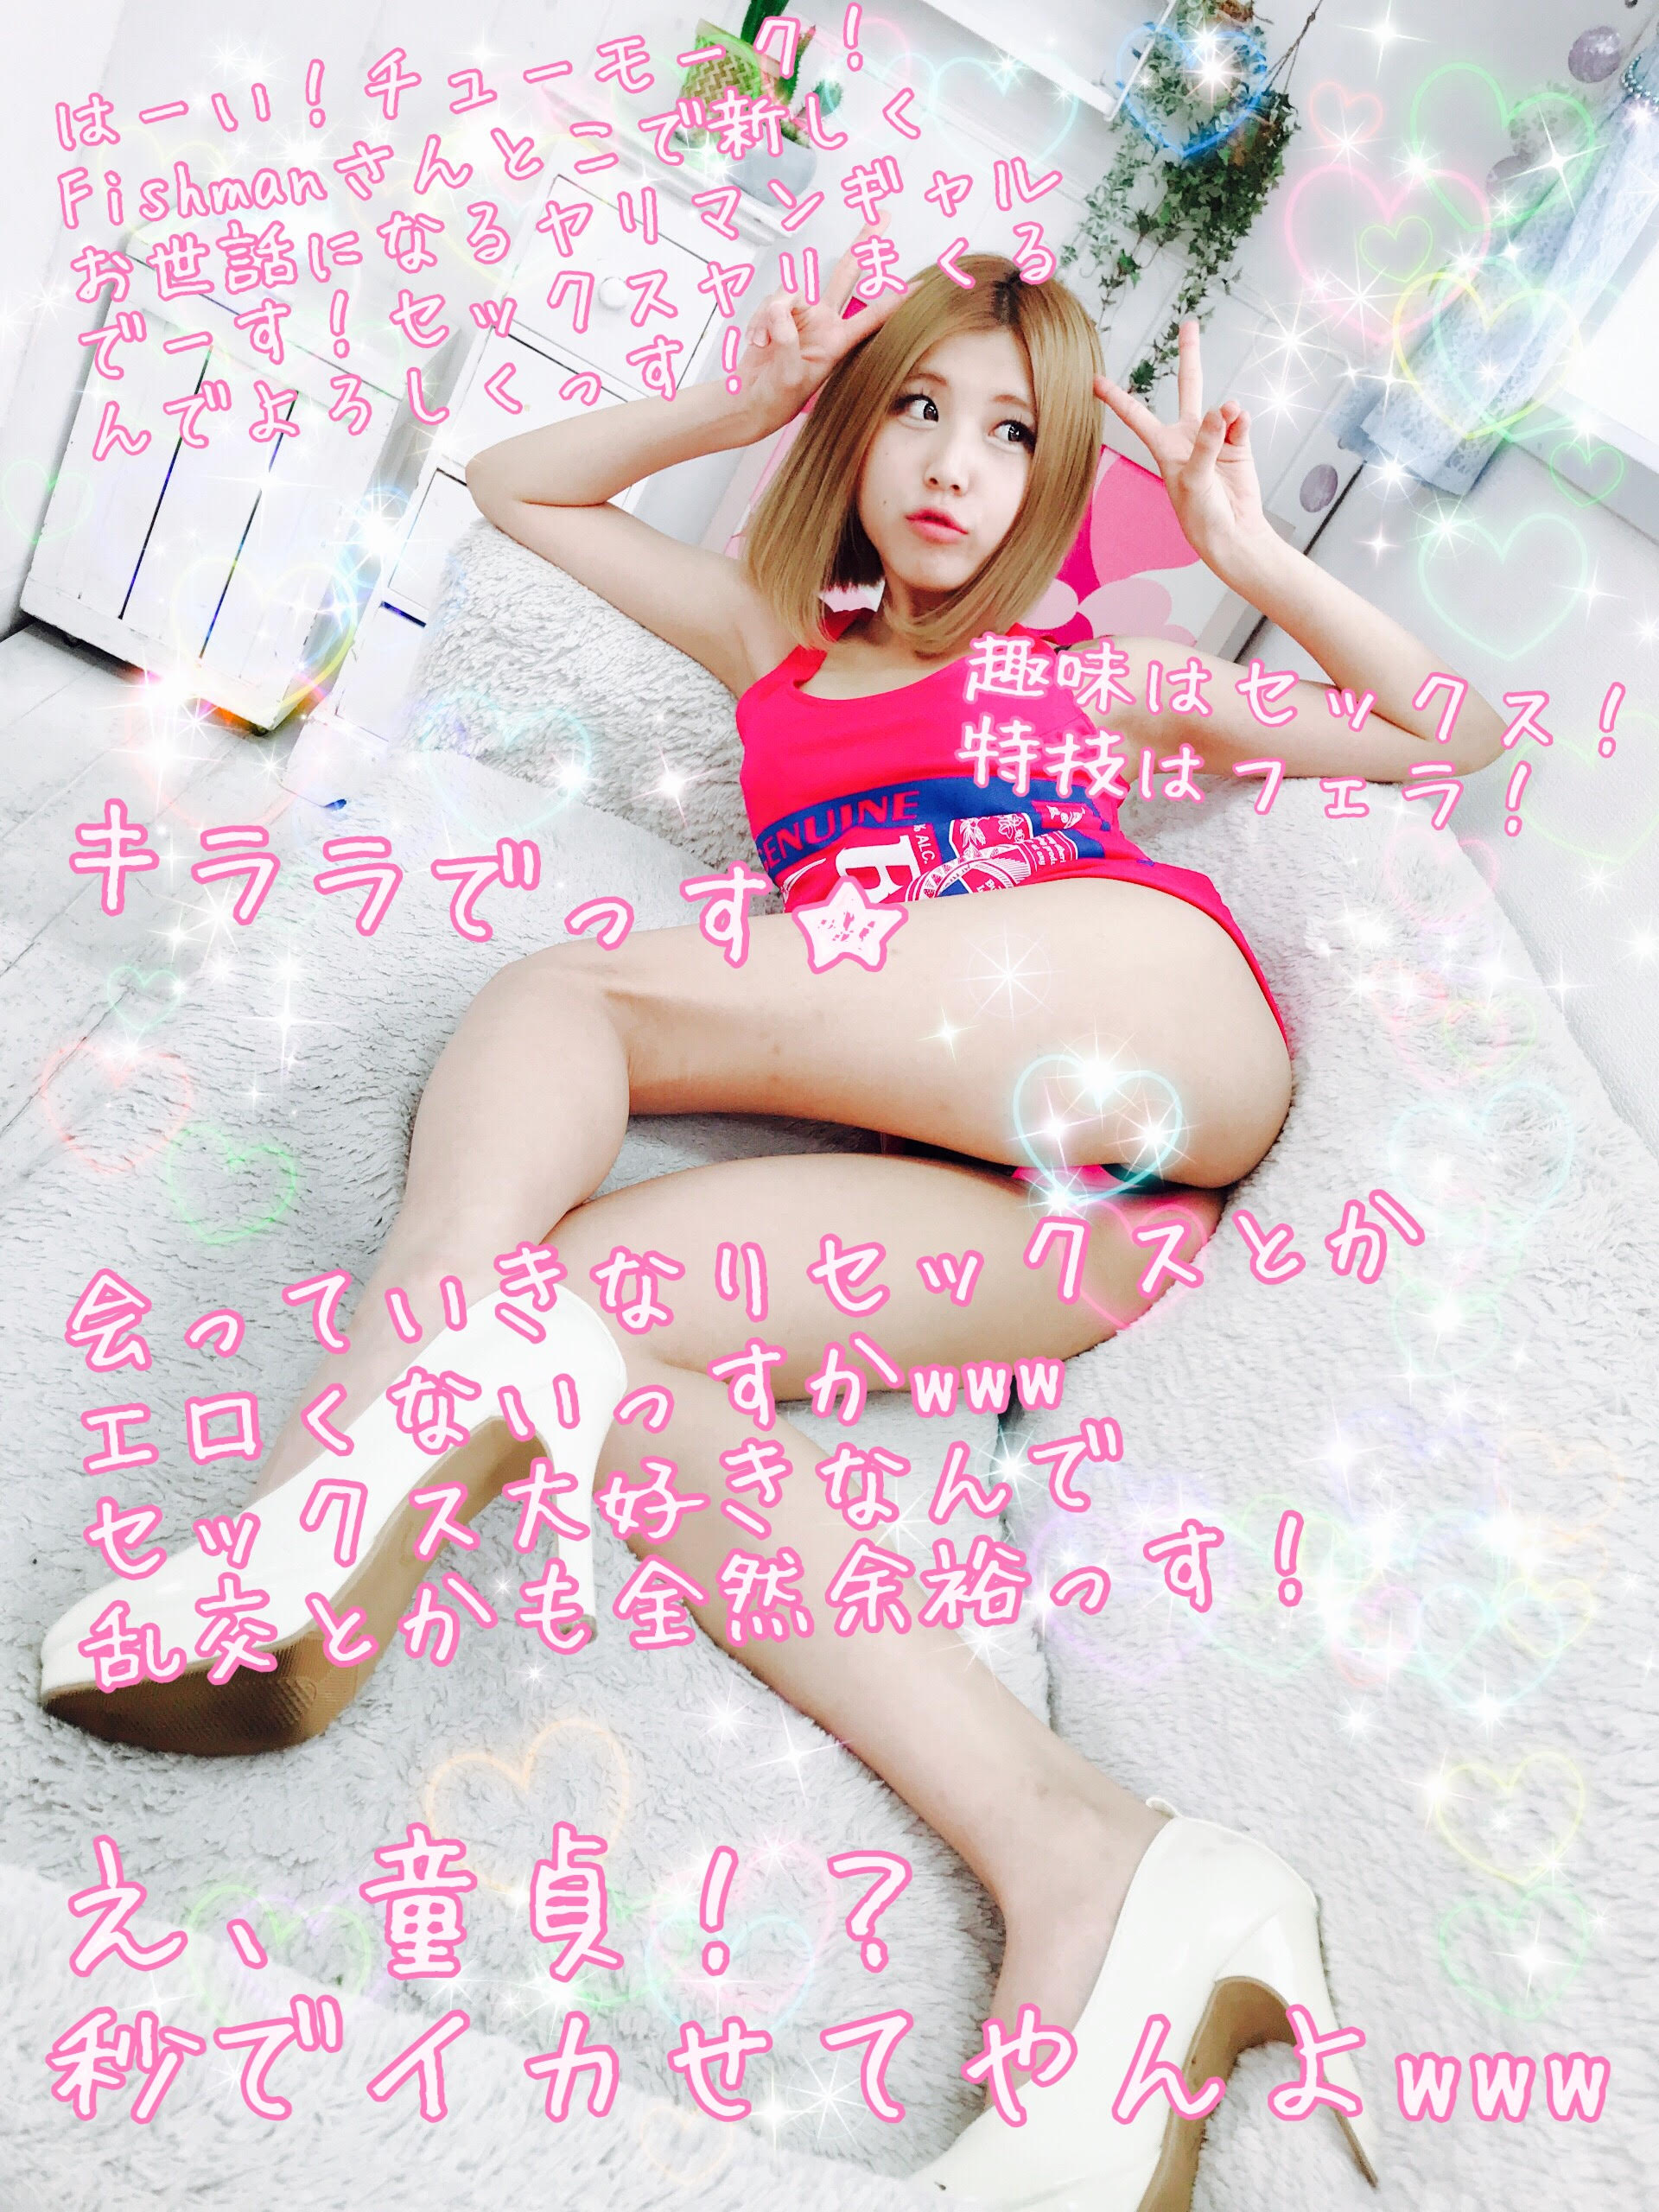 FC2 PPV 920868 Provocation system spear man gal ★ Kirara chan is uncle to Squid in 10 seconds ★ ぉ to cum